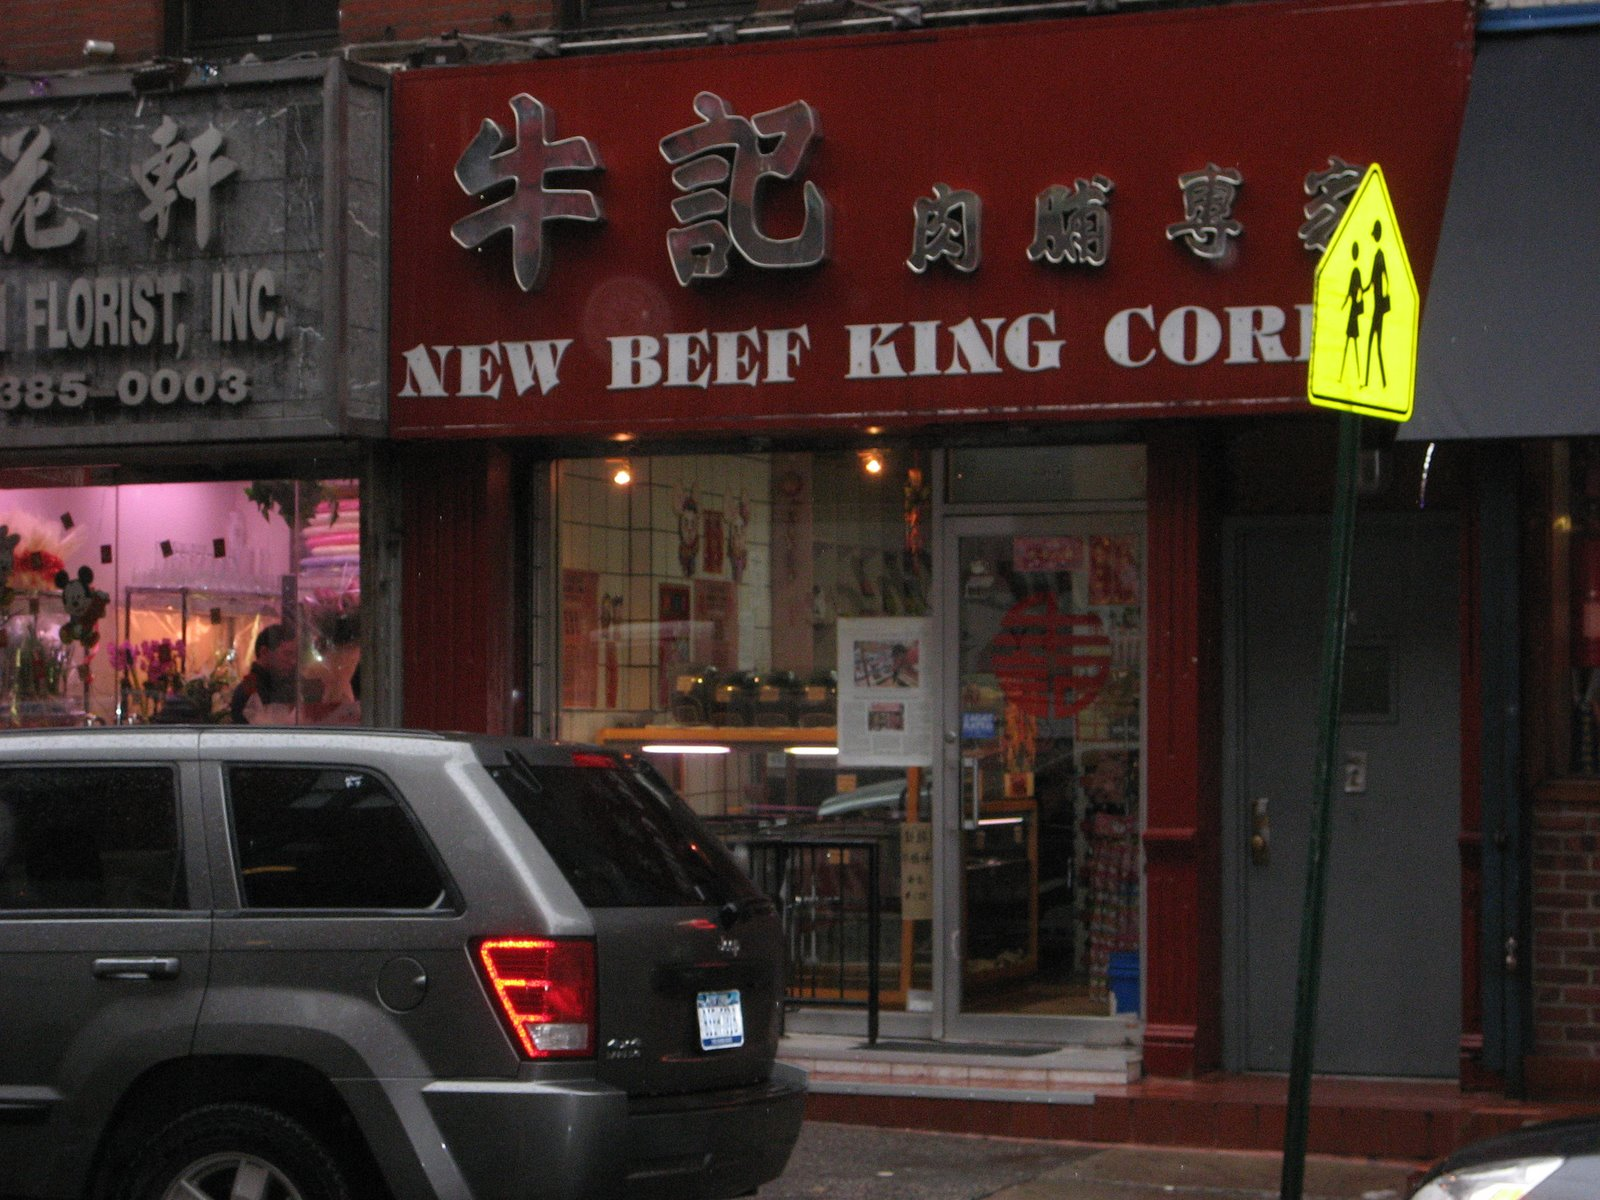 New Beef King Corp